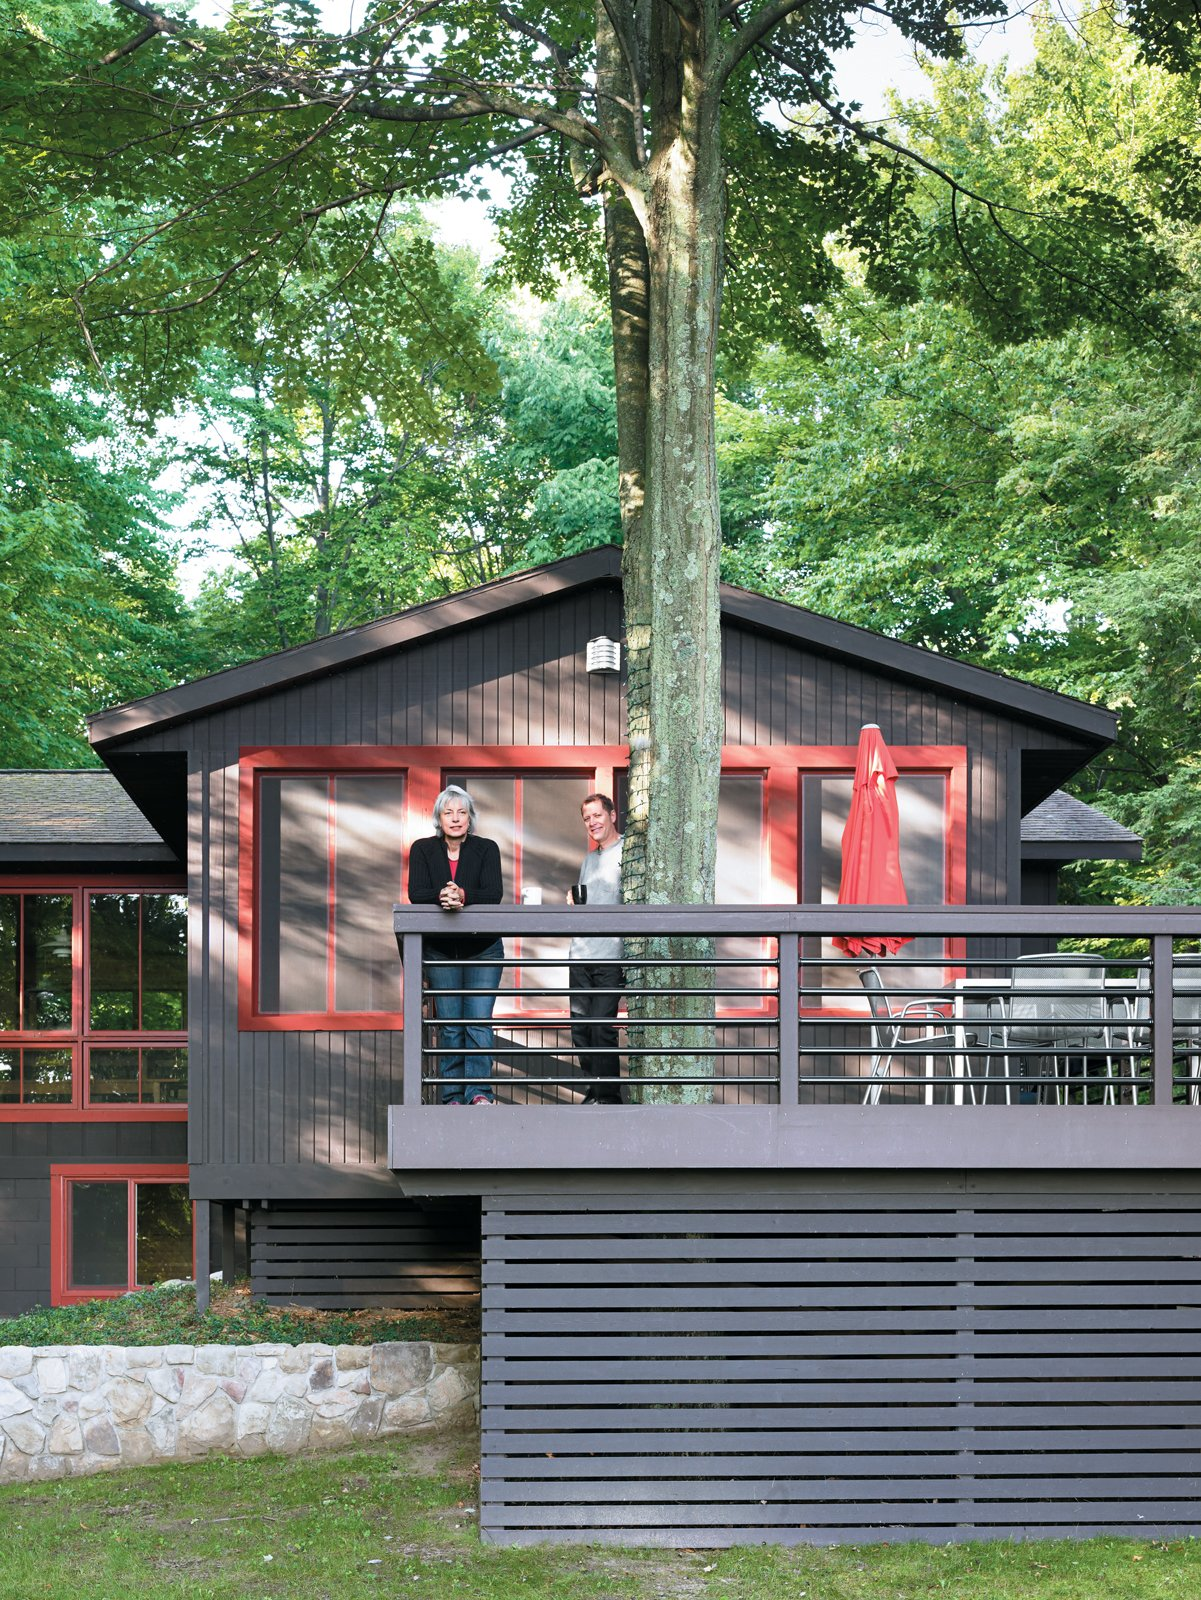 Built around the twin trunks of a maple tree, the Campbells' outdoor deck provides tranquil views of the lake and a chance for the family to spot roaming wildlife while enjoying their morning coffee. During warmer months, the wide space creates an ideal secondary dining room, shaded by the canopy of leaves overhead.  Photo 7 of 16 in 15 Brilliant Designs That Work Around Nature